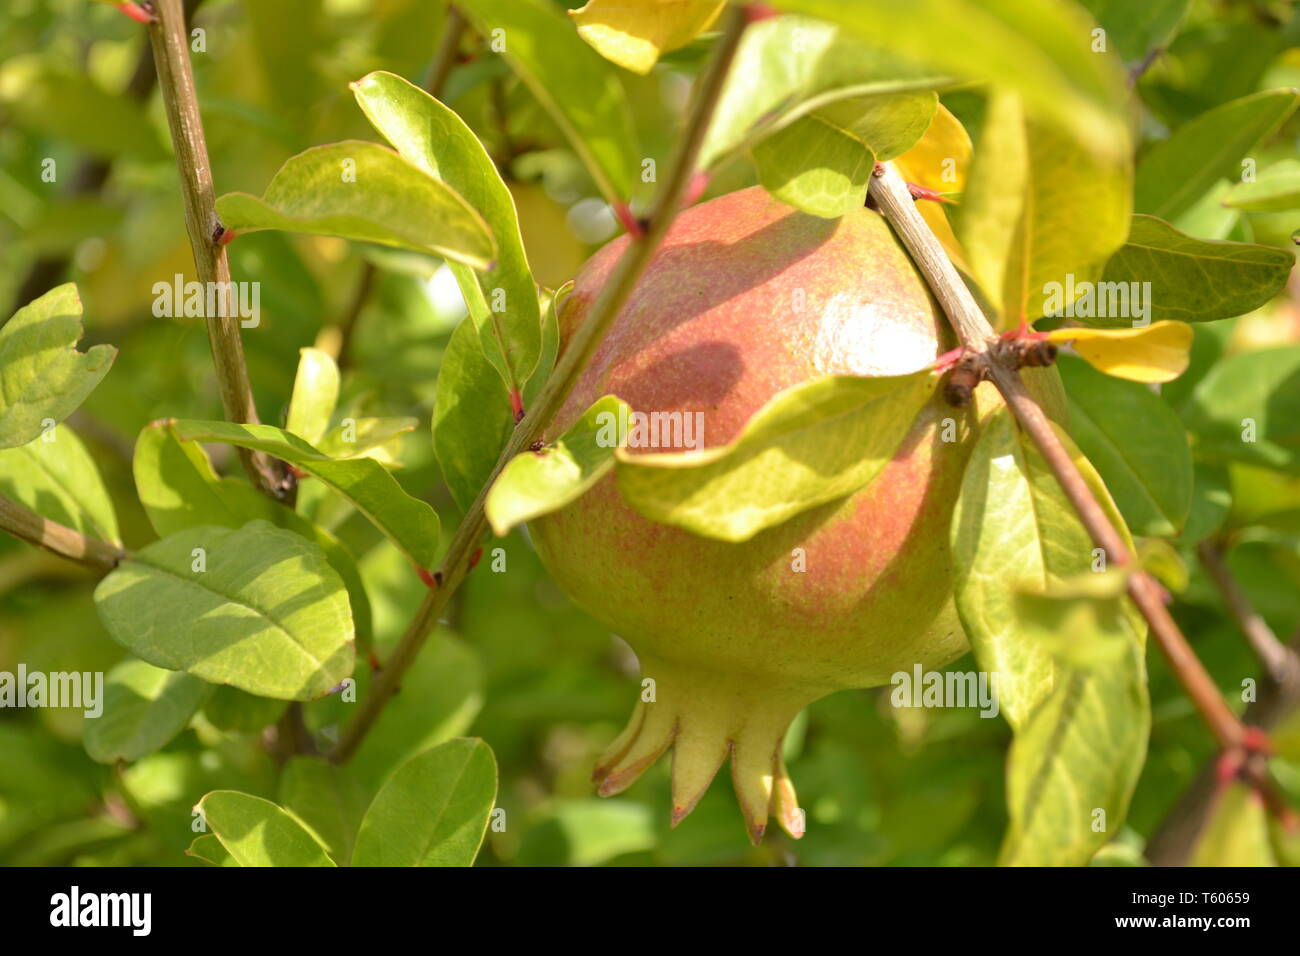 Close-up view to one green red pomegranate fruit brightly illuminated by the sunshine in the middle of leaves and branches. Stock Photo